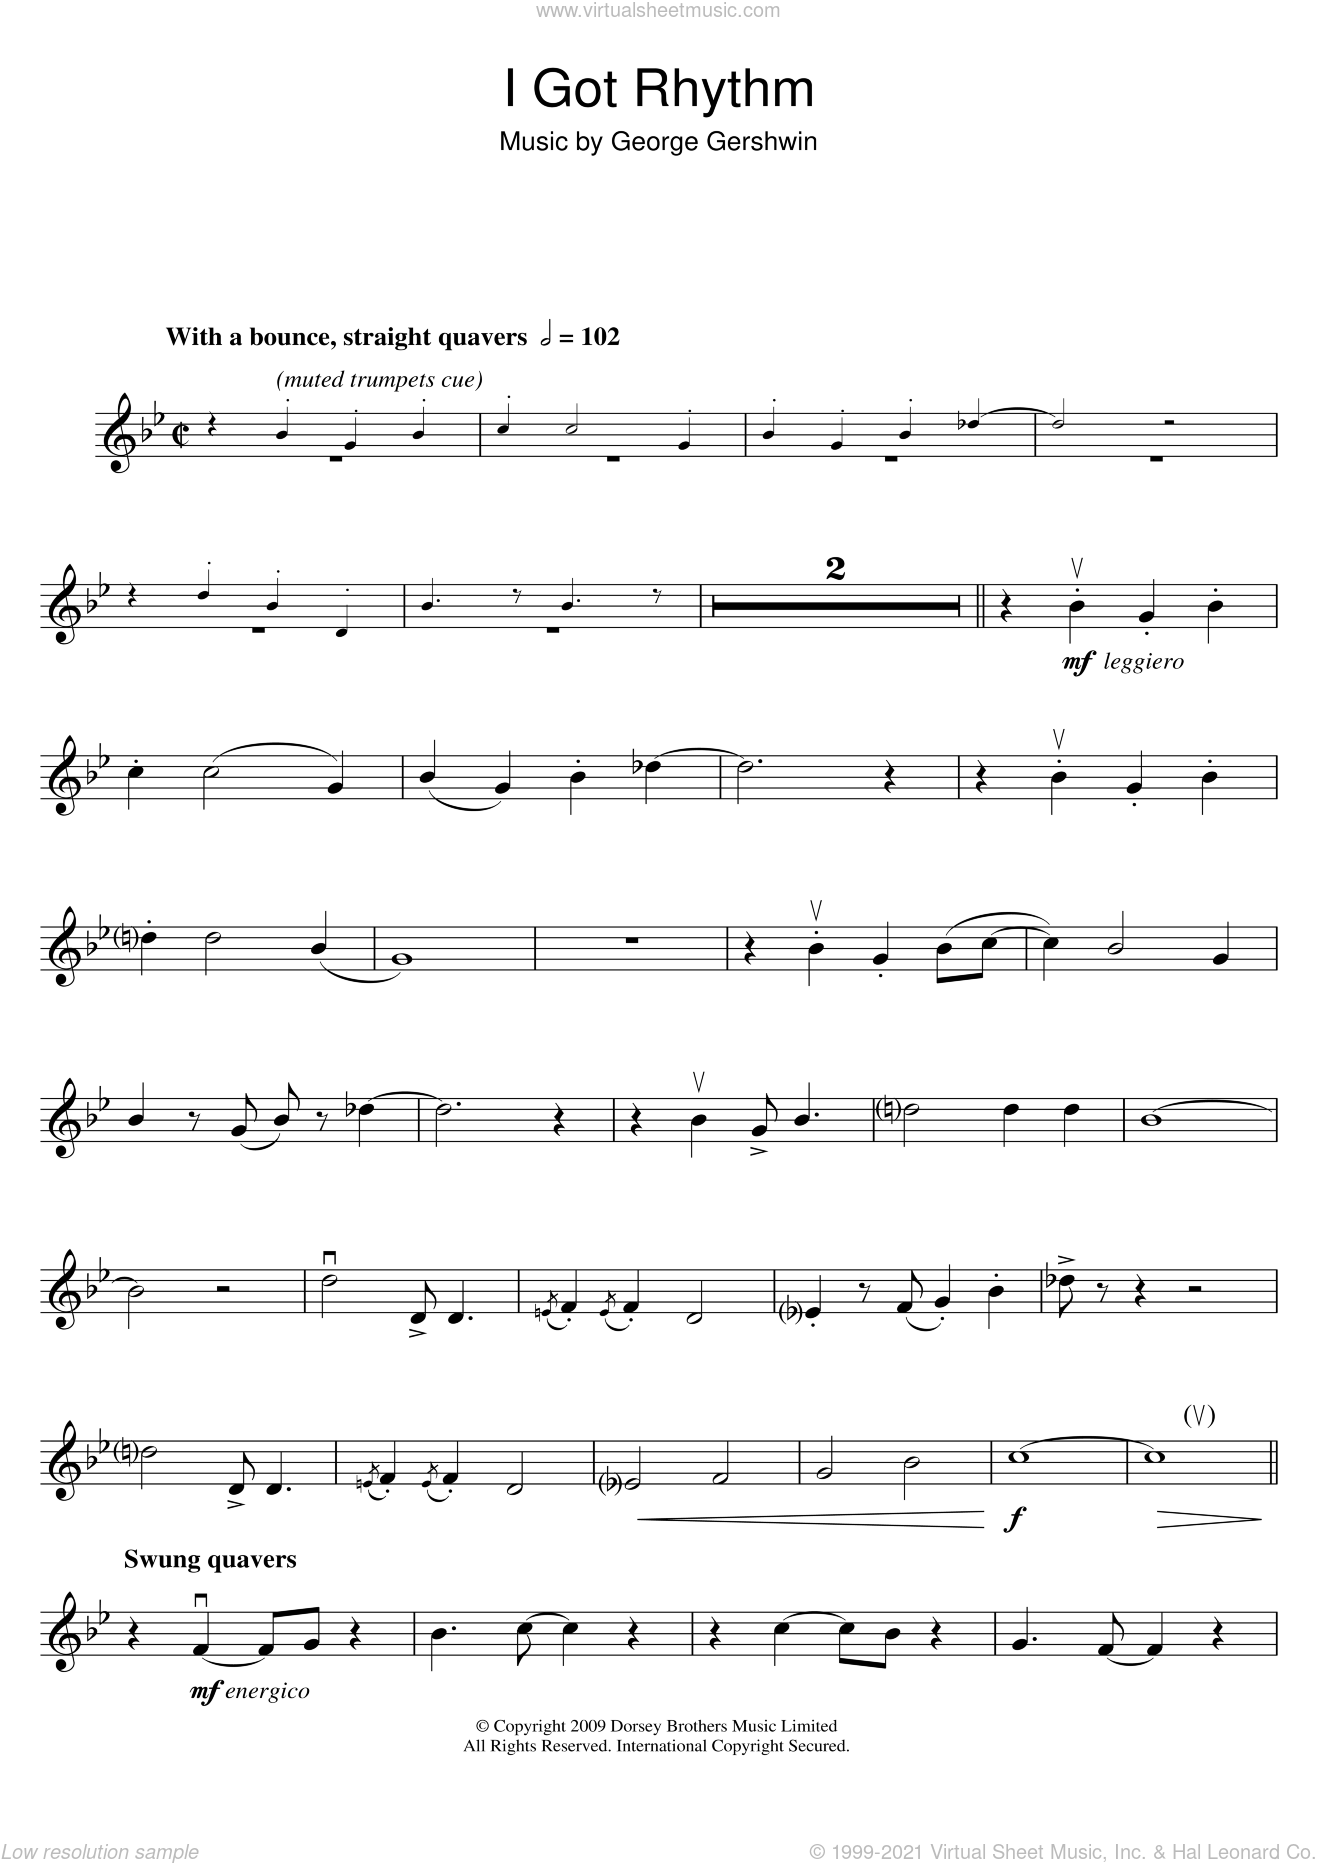 I Got Rhythm sheet music for violin solo by George Gershwin, intermediate skill level